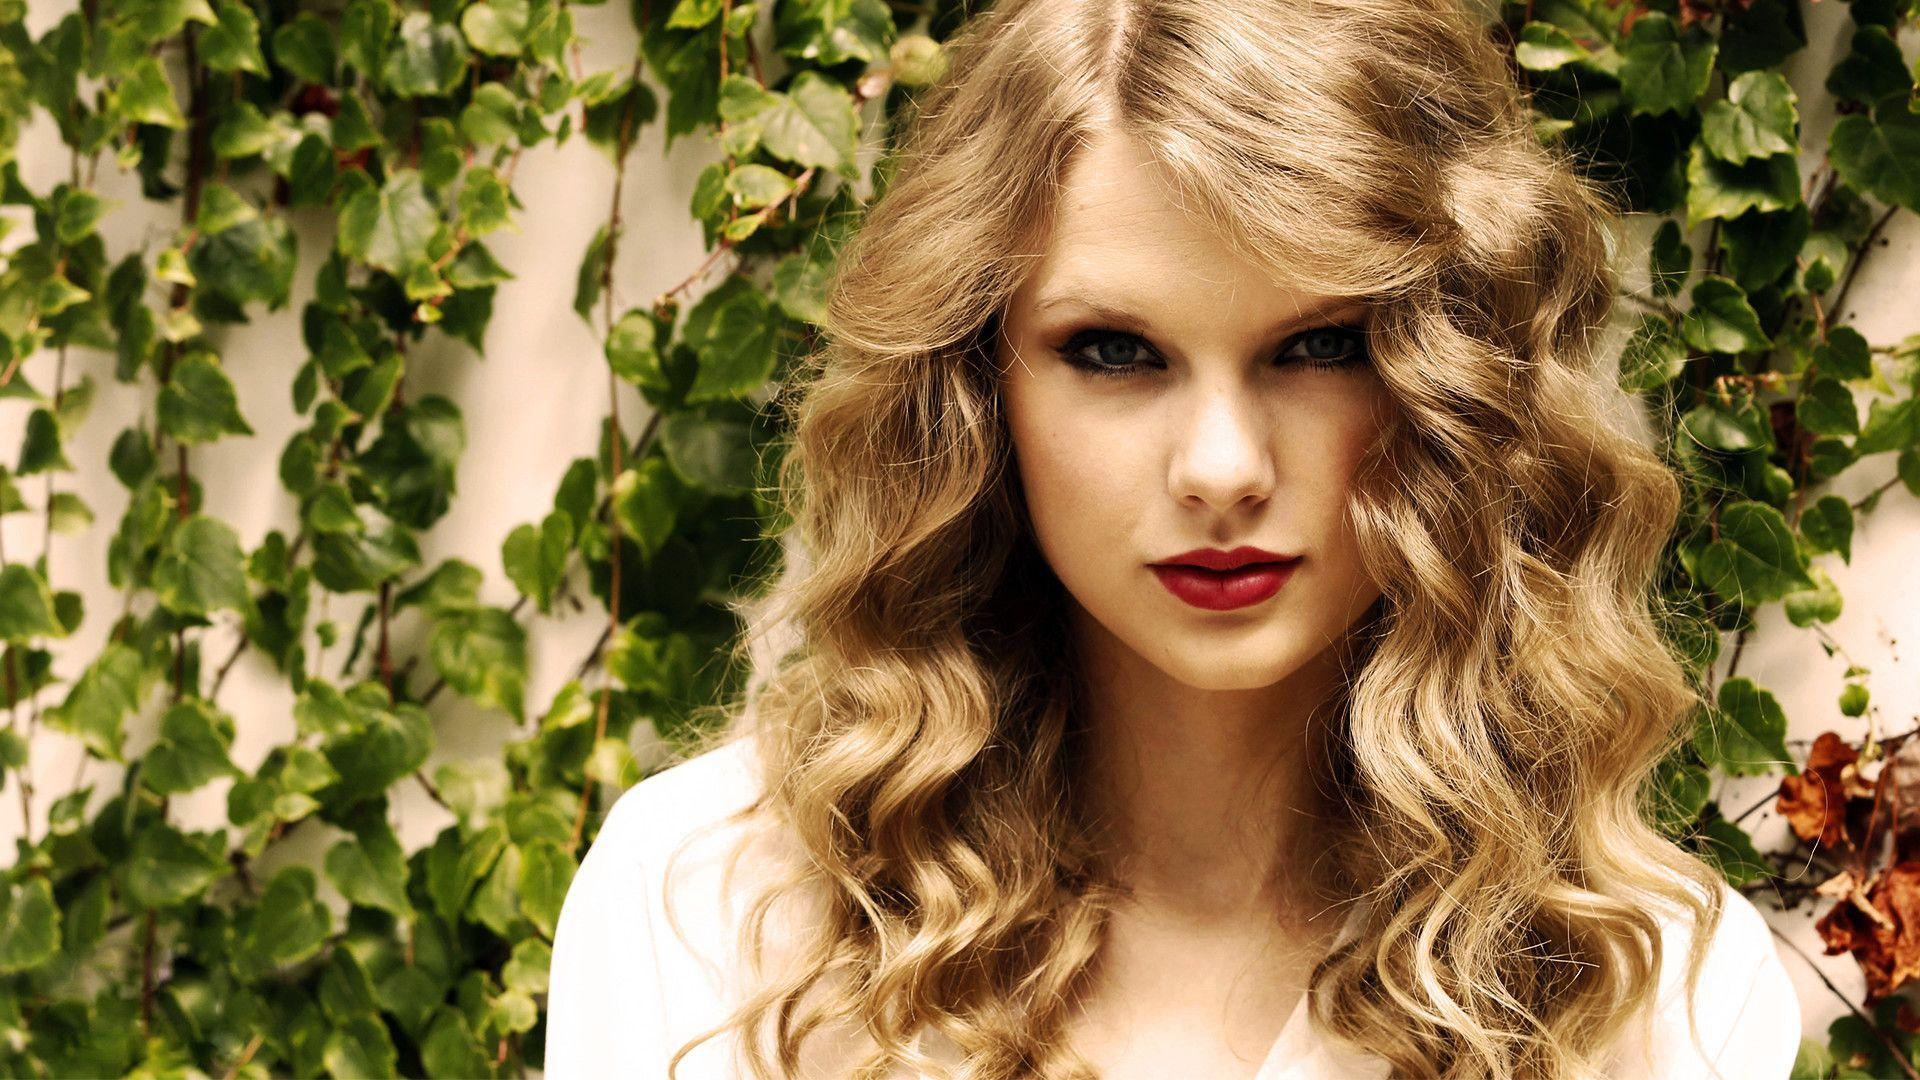 Taylor Swift 2018 Wallpapers - Wallpaper Cave